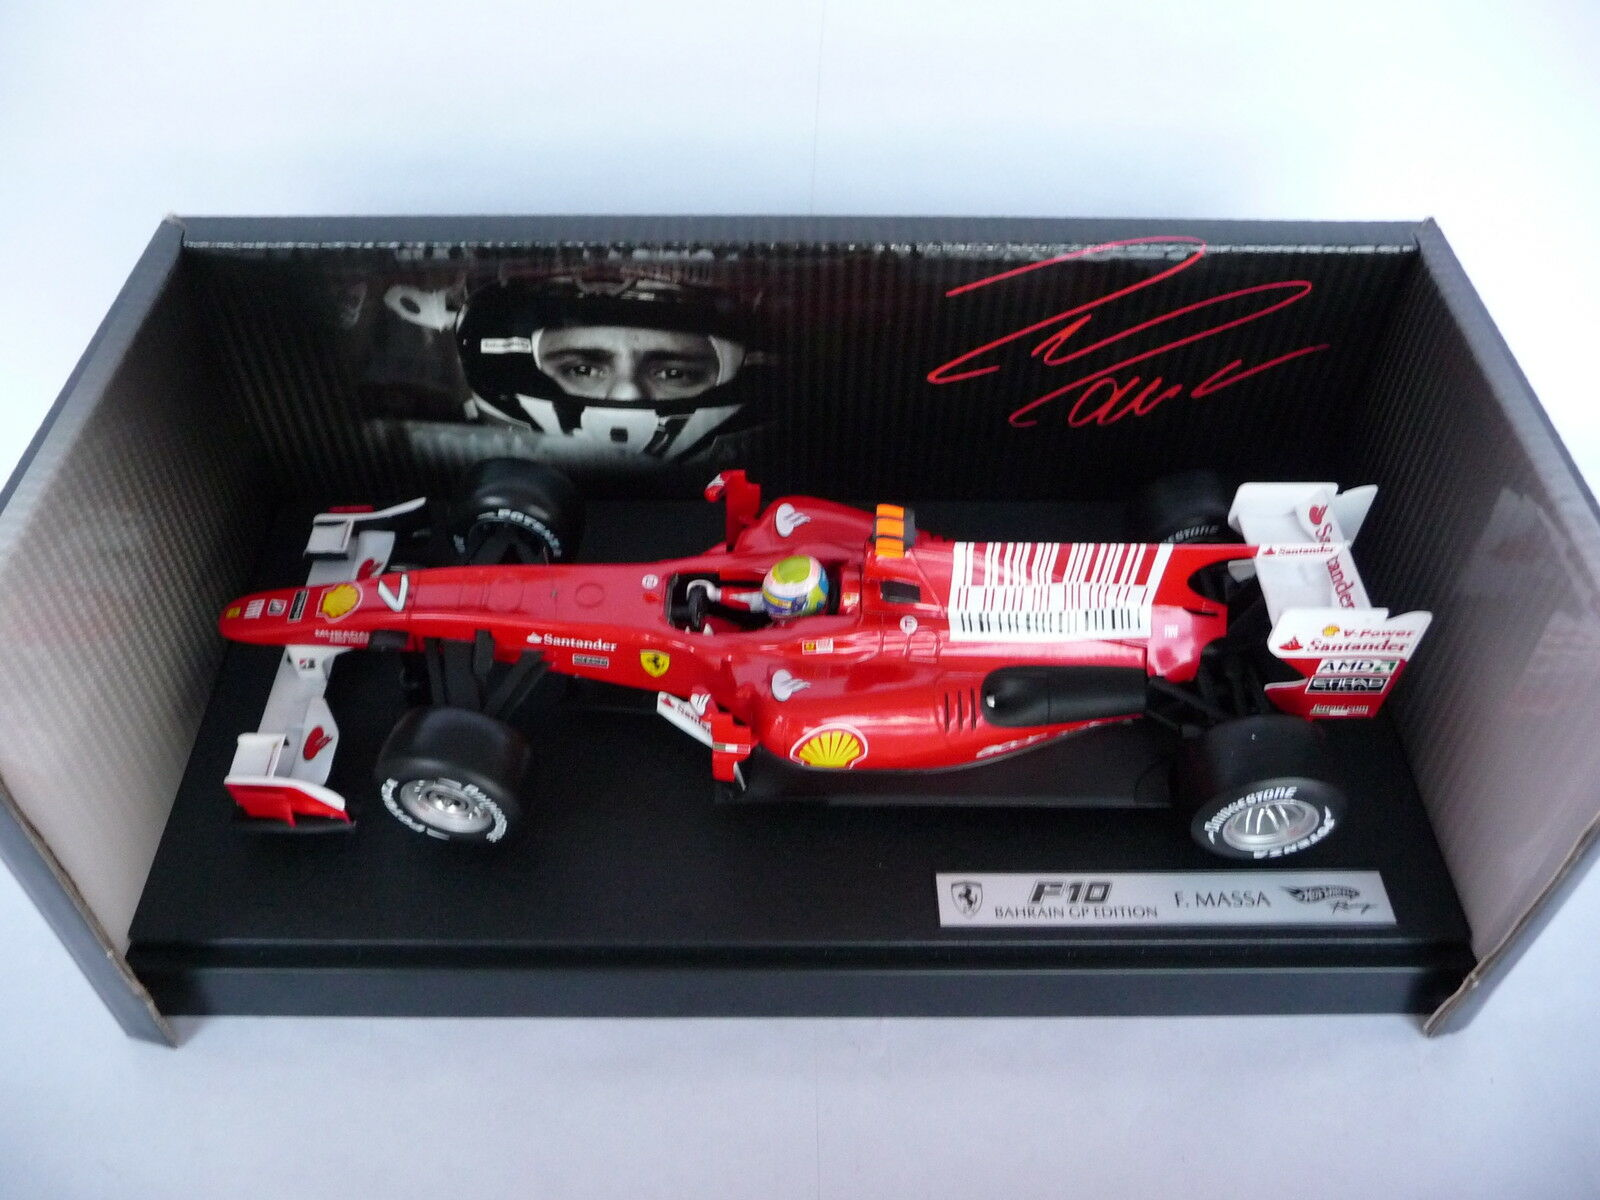 Hot Wheels 1 18 Ferrari F10 Bahrain GP 2010 2010 2010 Felipe Massa T6288 6d7a43